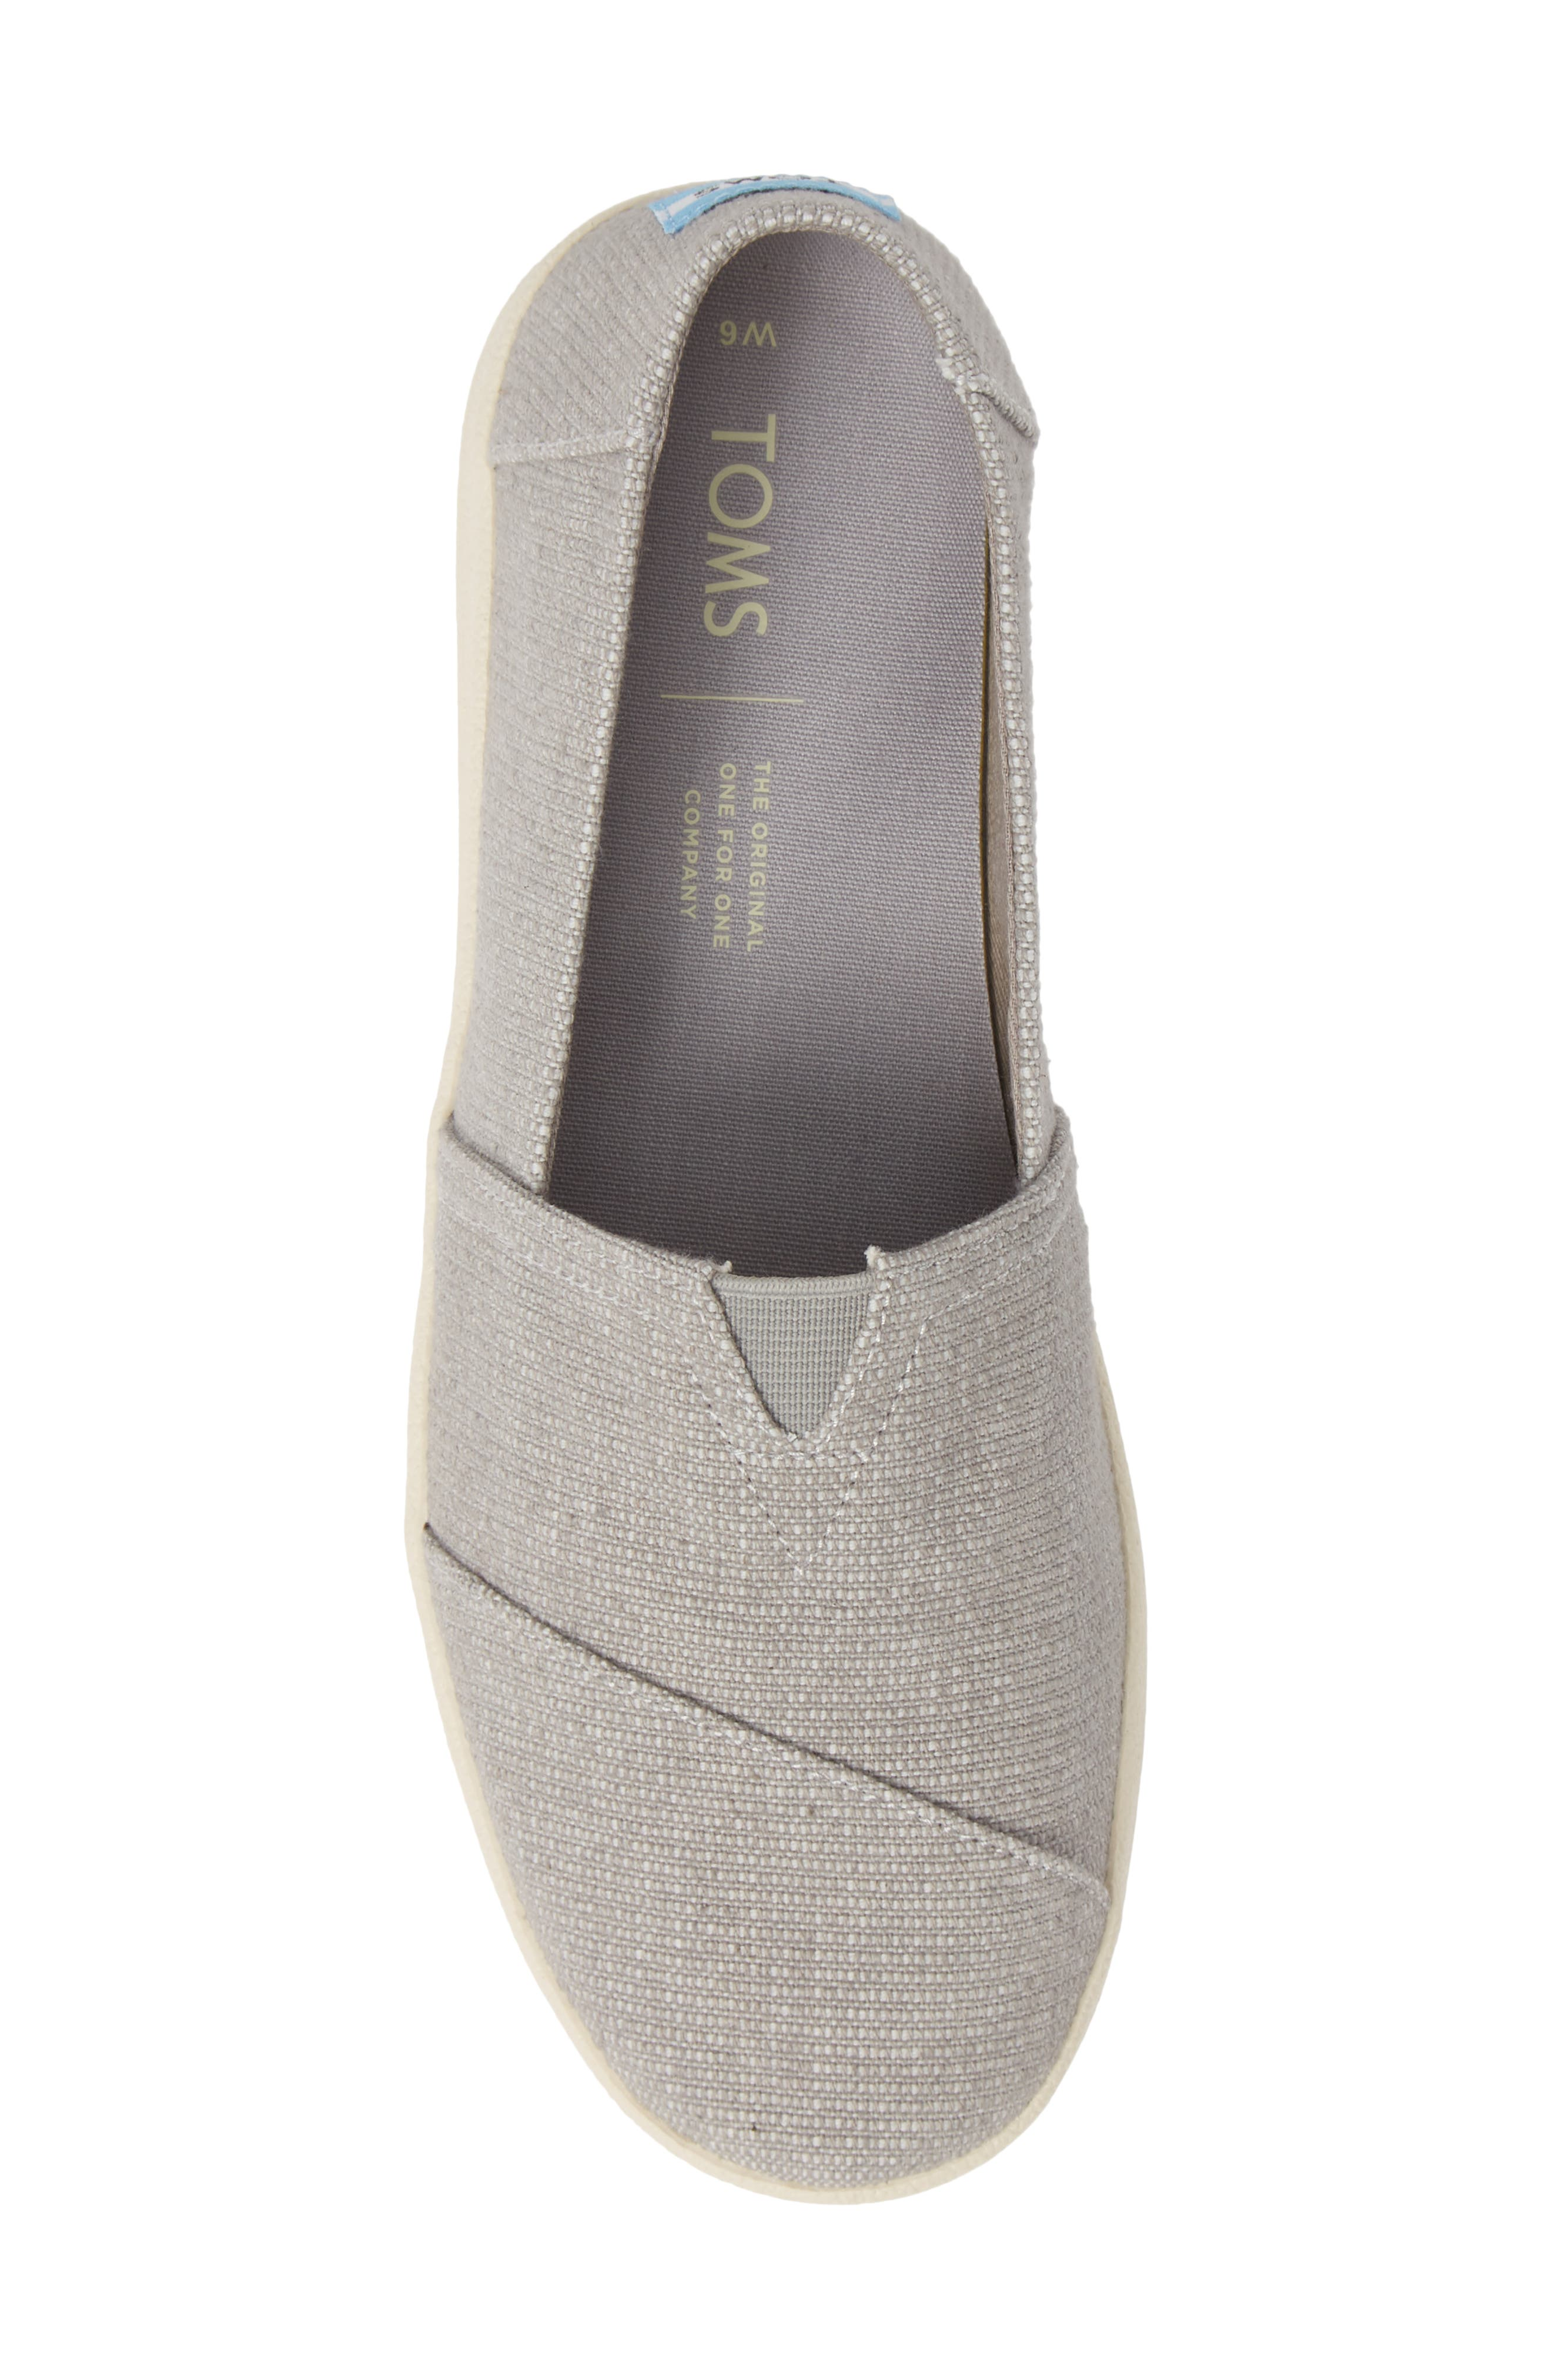 TOMS, Avalon Slip-On Sneaker, Alternate thumbnail 5, color, DRIZZLE GREY CANVAS